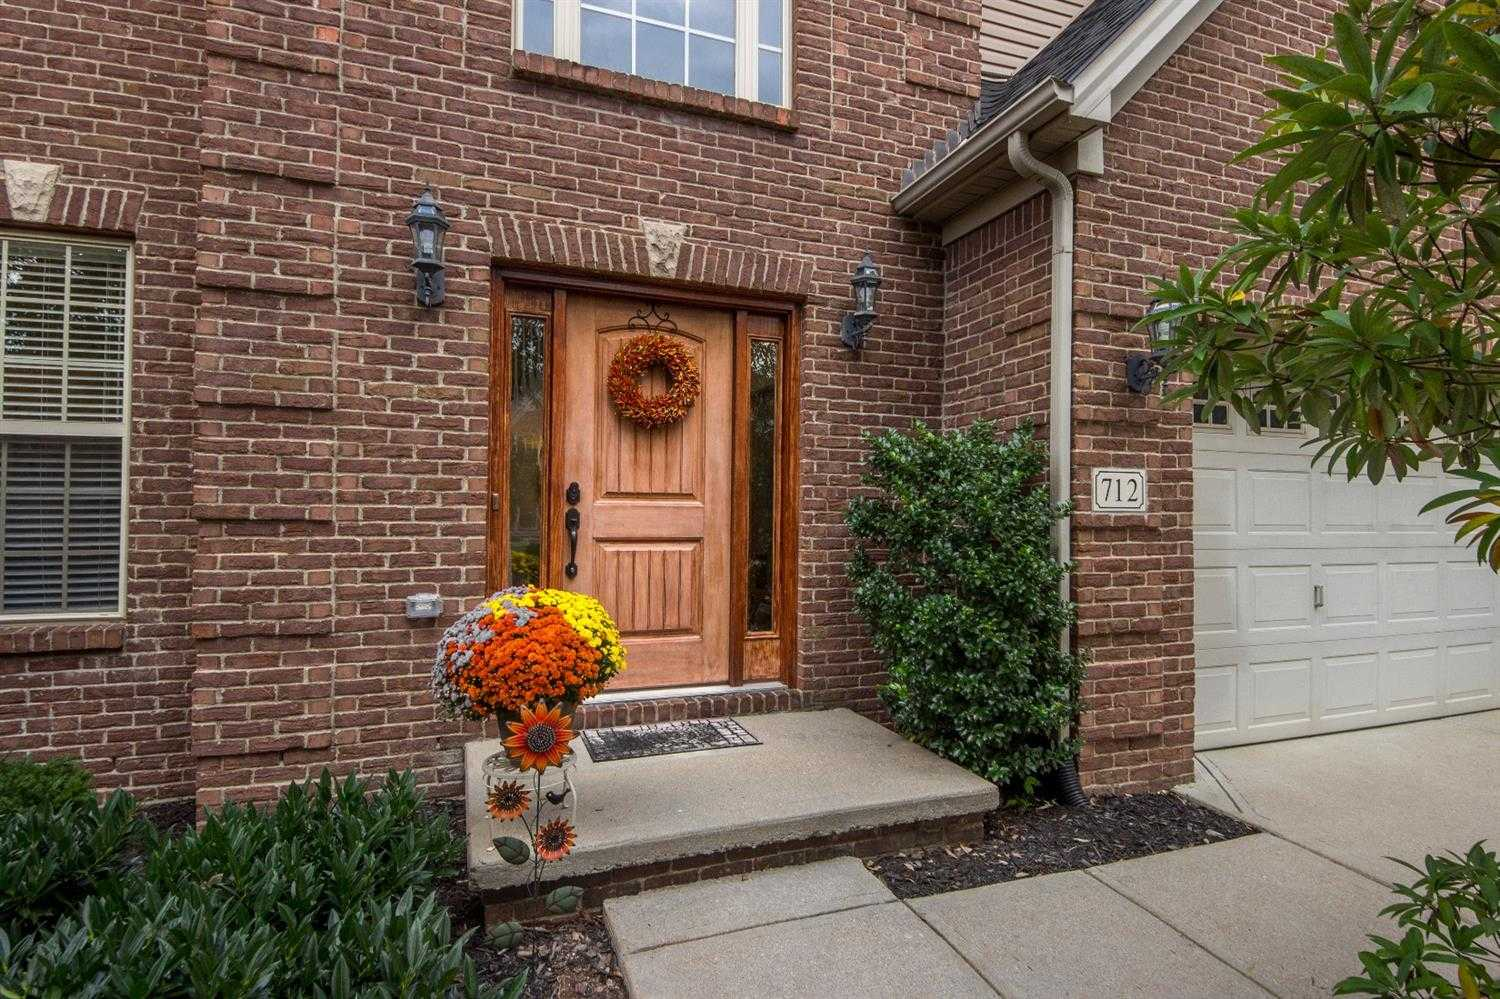 $284,900 - 4Br/3Ba -  for Sale in Chilesburg, Lexington